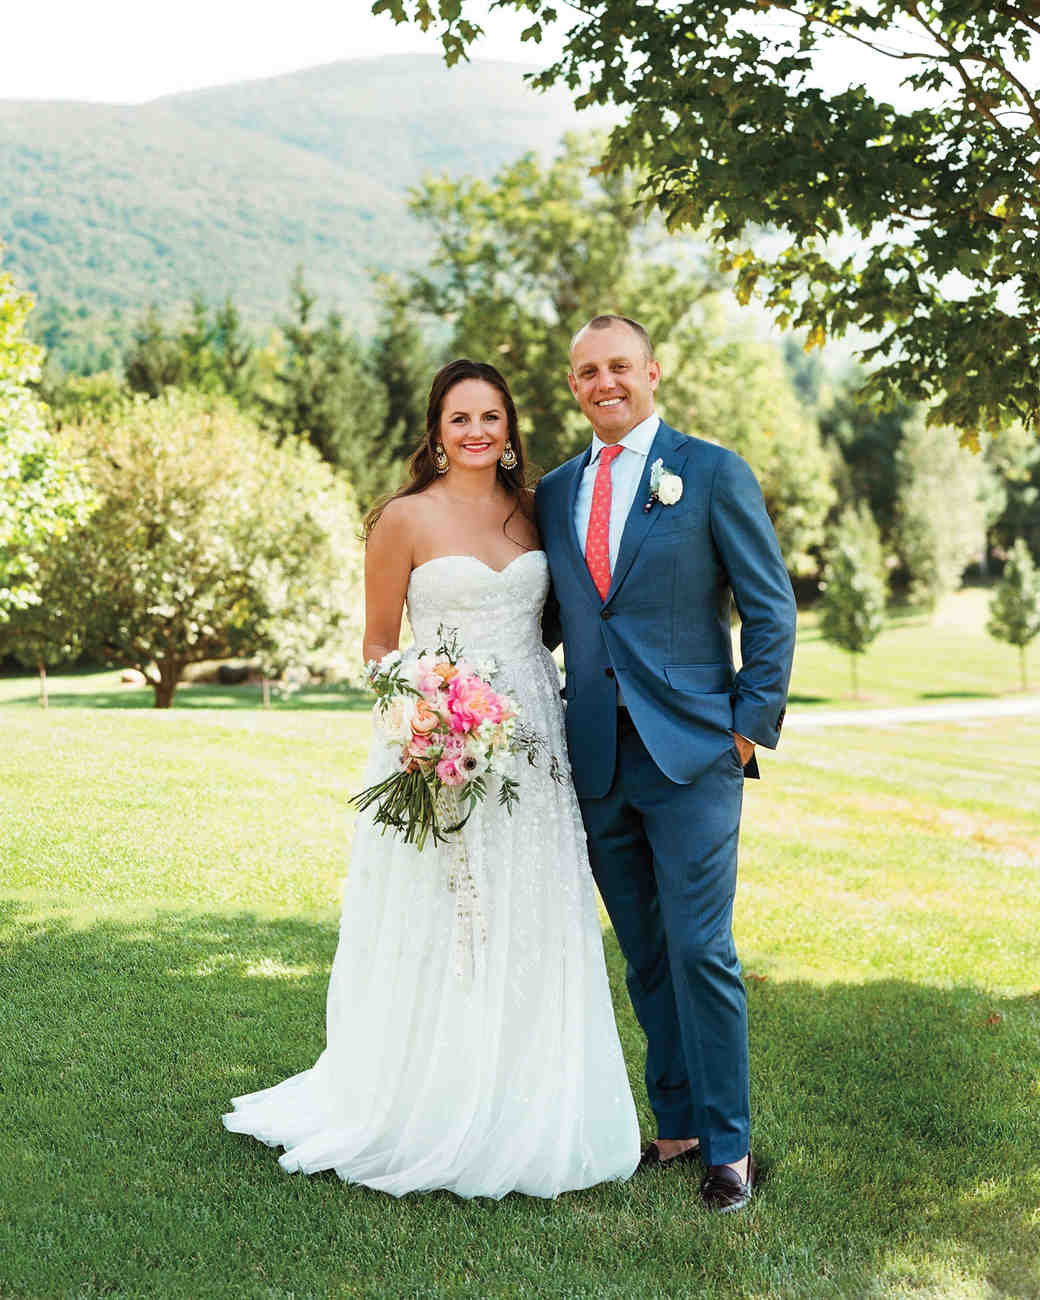 A Globally-Inspired Eclectic Vermont Wedding